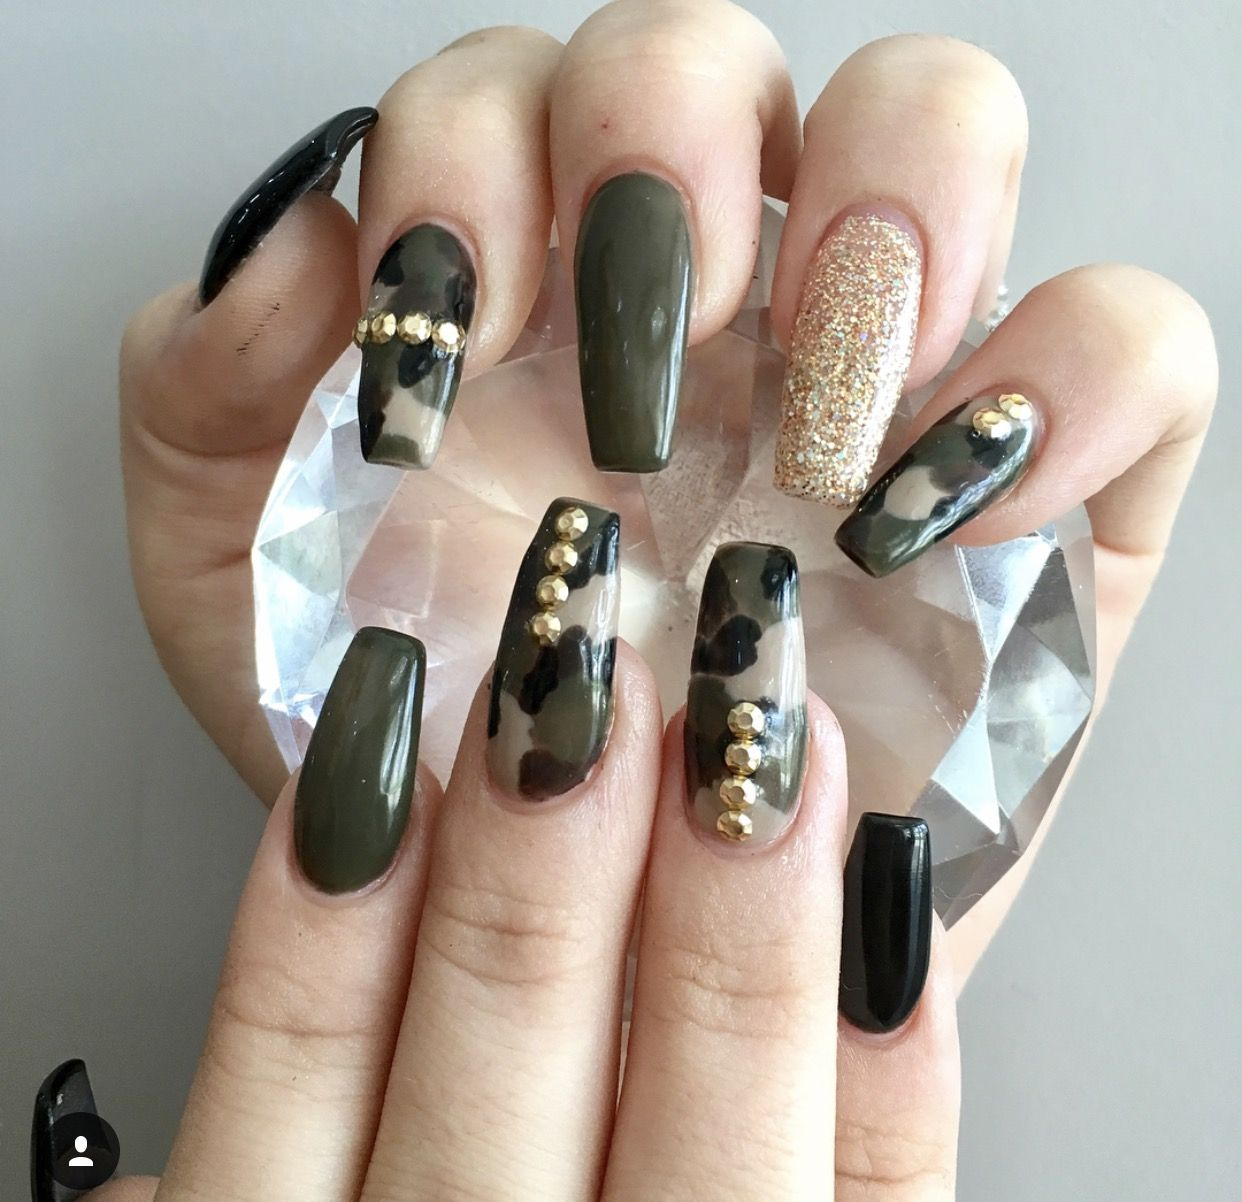 Camo acrylic coffin nails - Camo Acrylic Coffin Nails Beauty Pinterest Coffin Nails, Camo